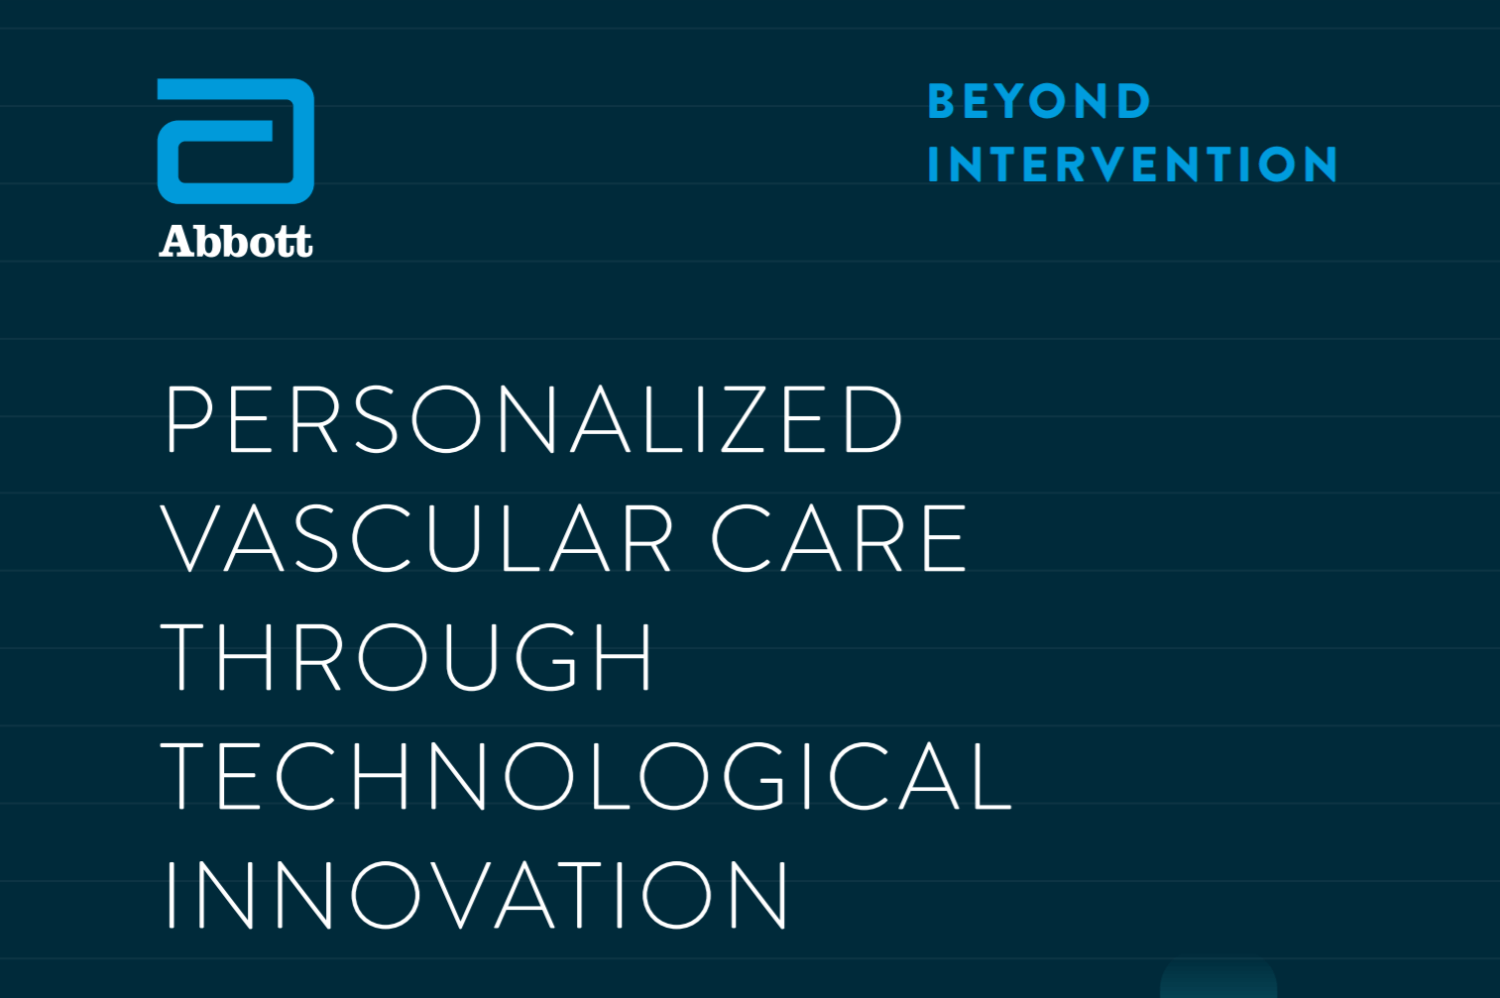 How Data-Driven Technology Holds The Promise of Better Outcomes for Vascular Patients